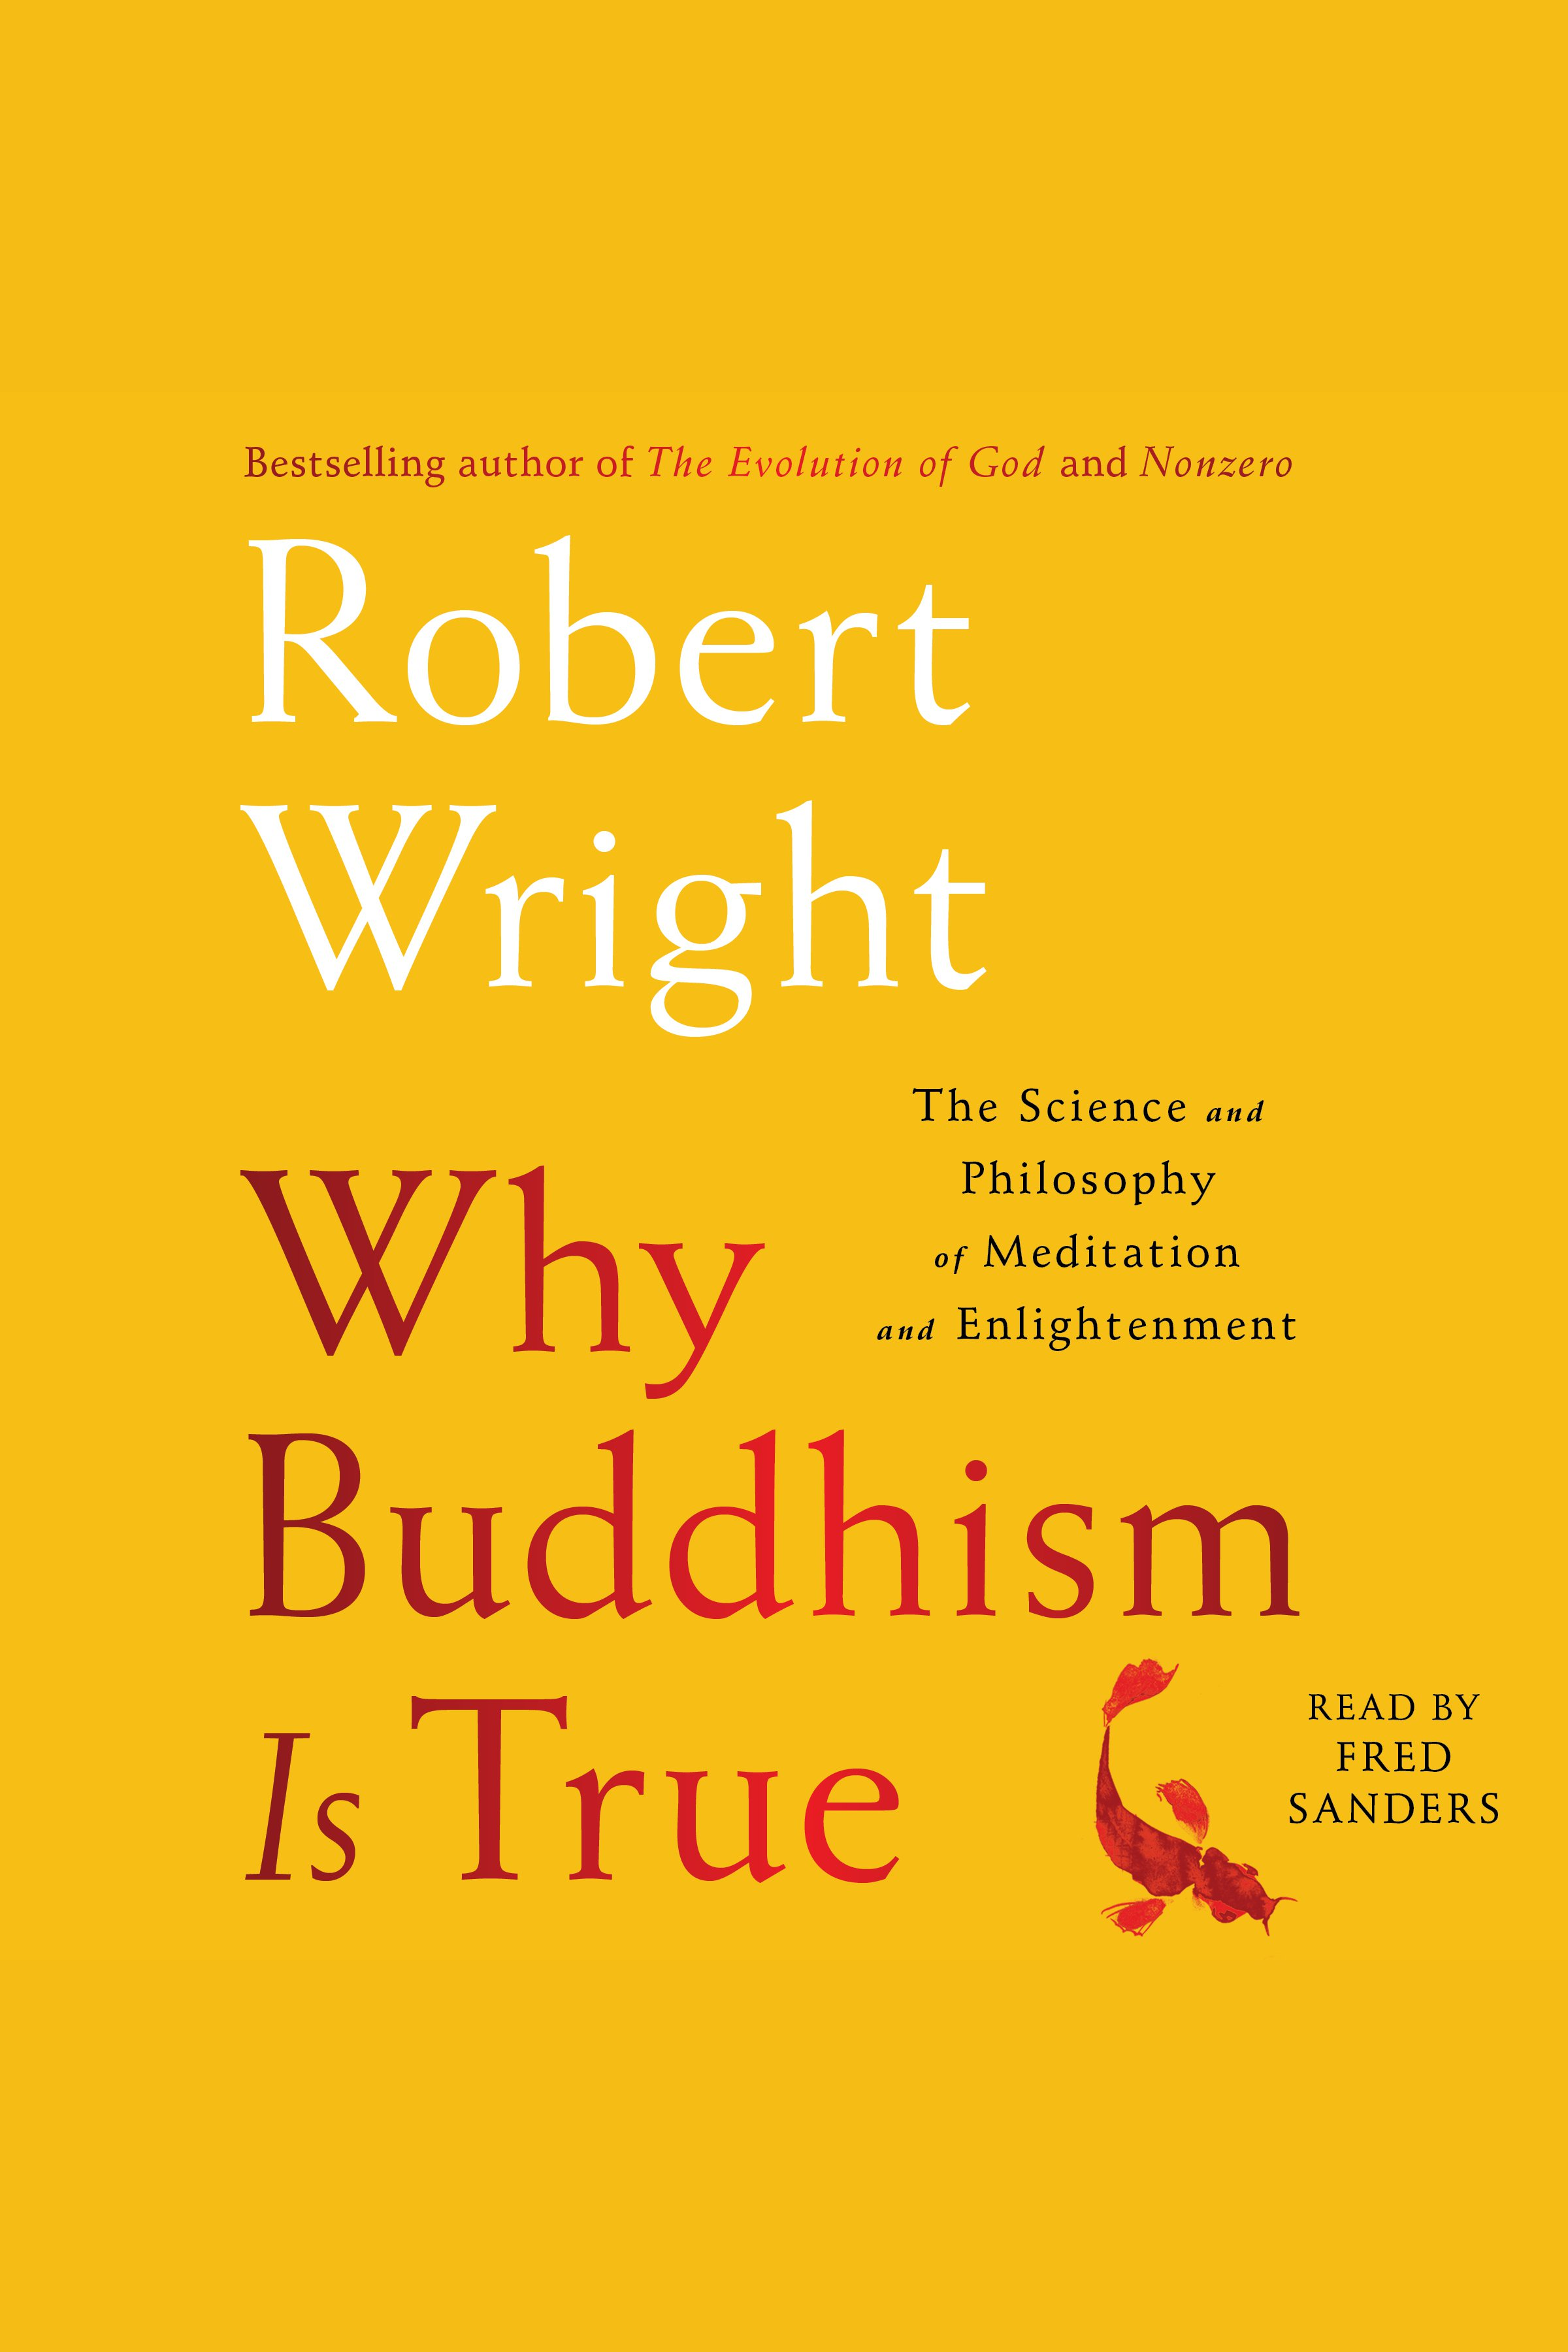 Why Buddhism is True [EAUDIOBOOK] The Science and Philosophy of Enlightenment